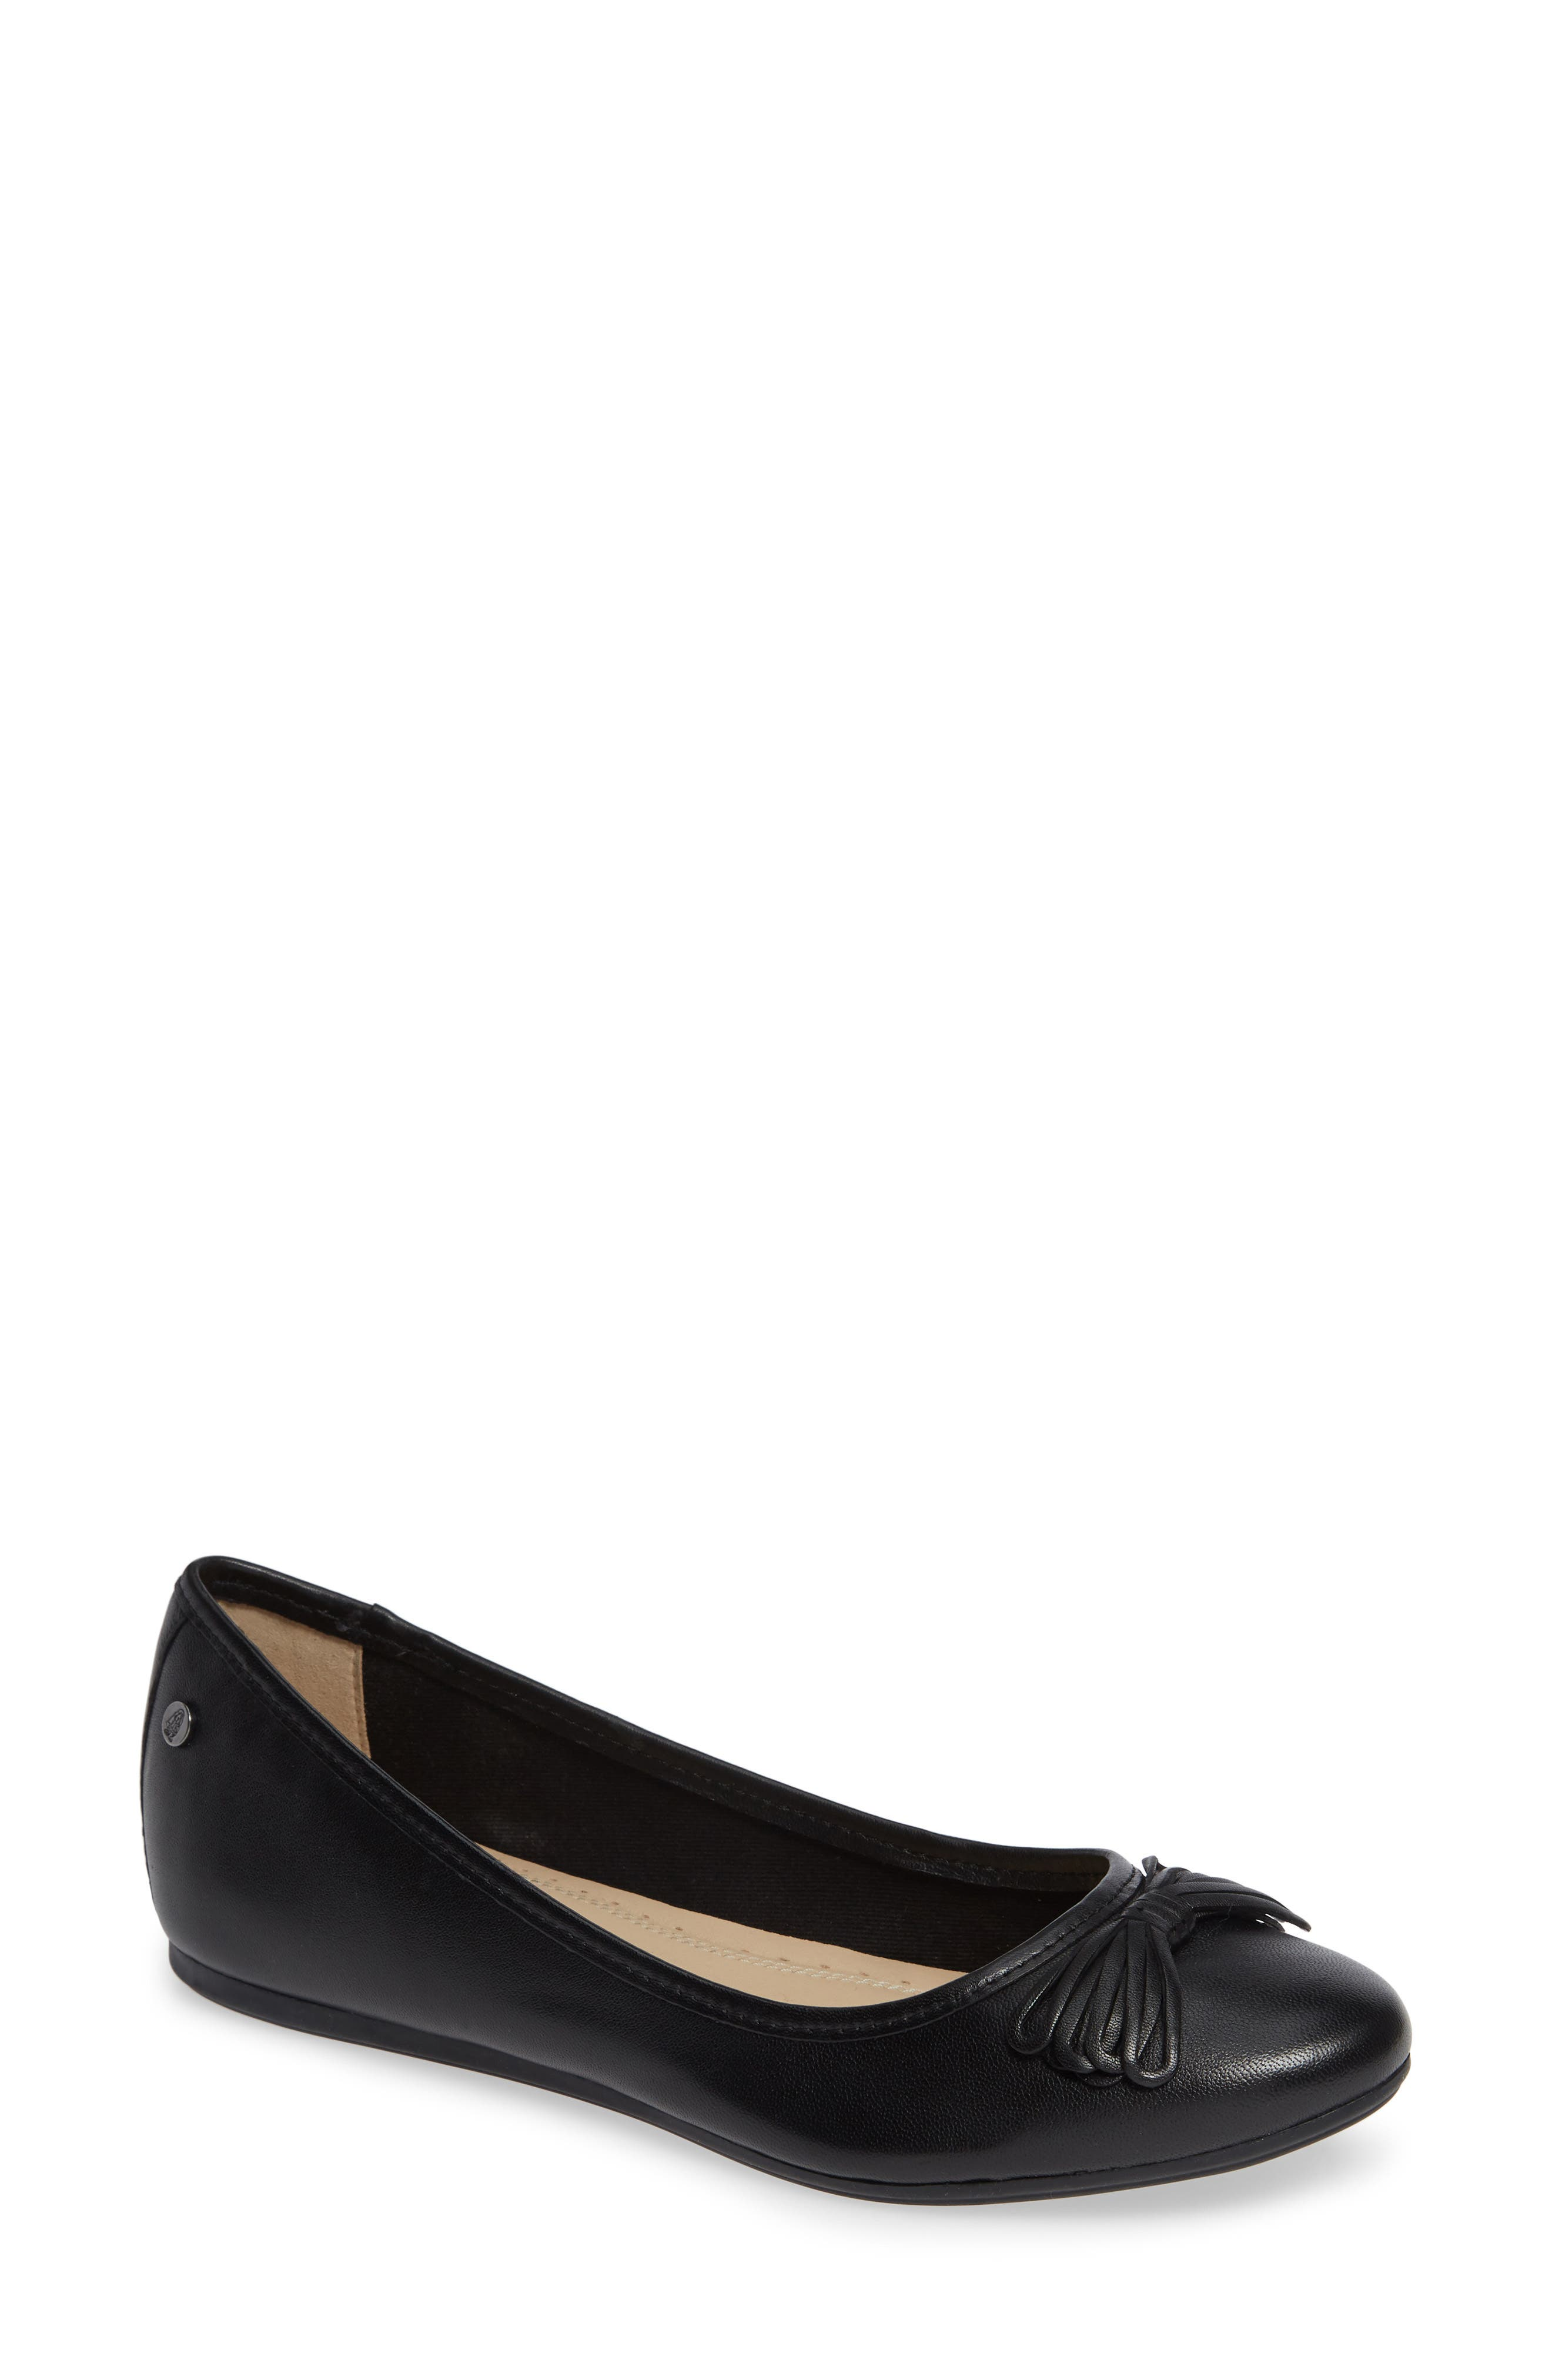 Heather Bow Ballet Flat,                         Main,                         color, BLACK LEATHER